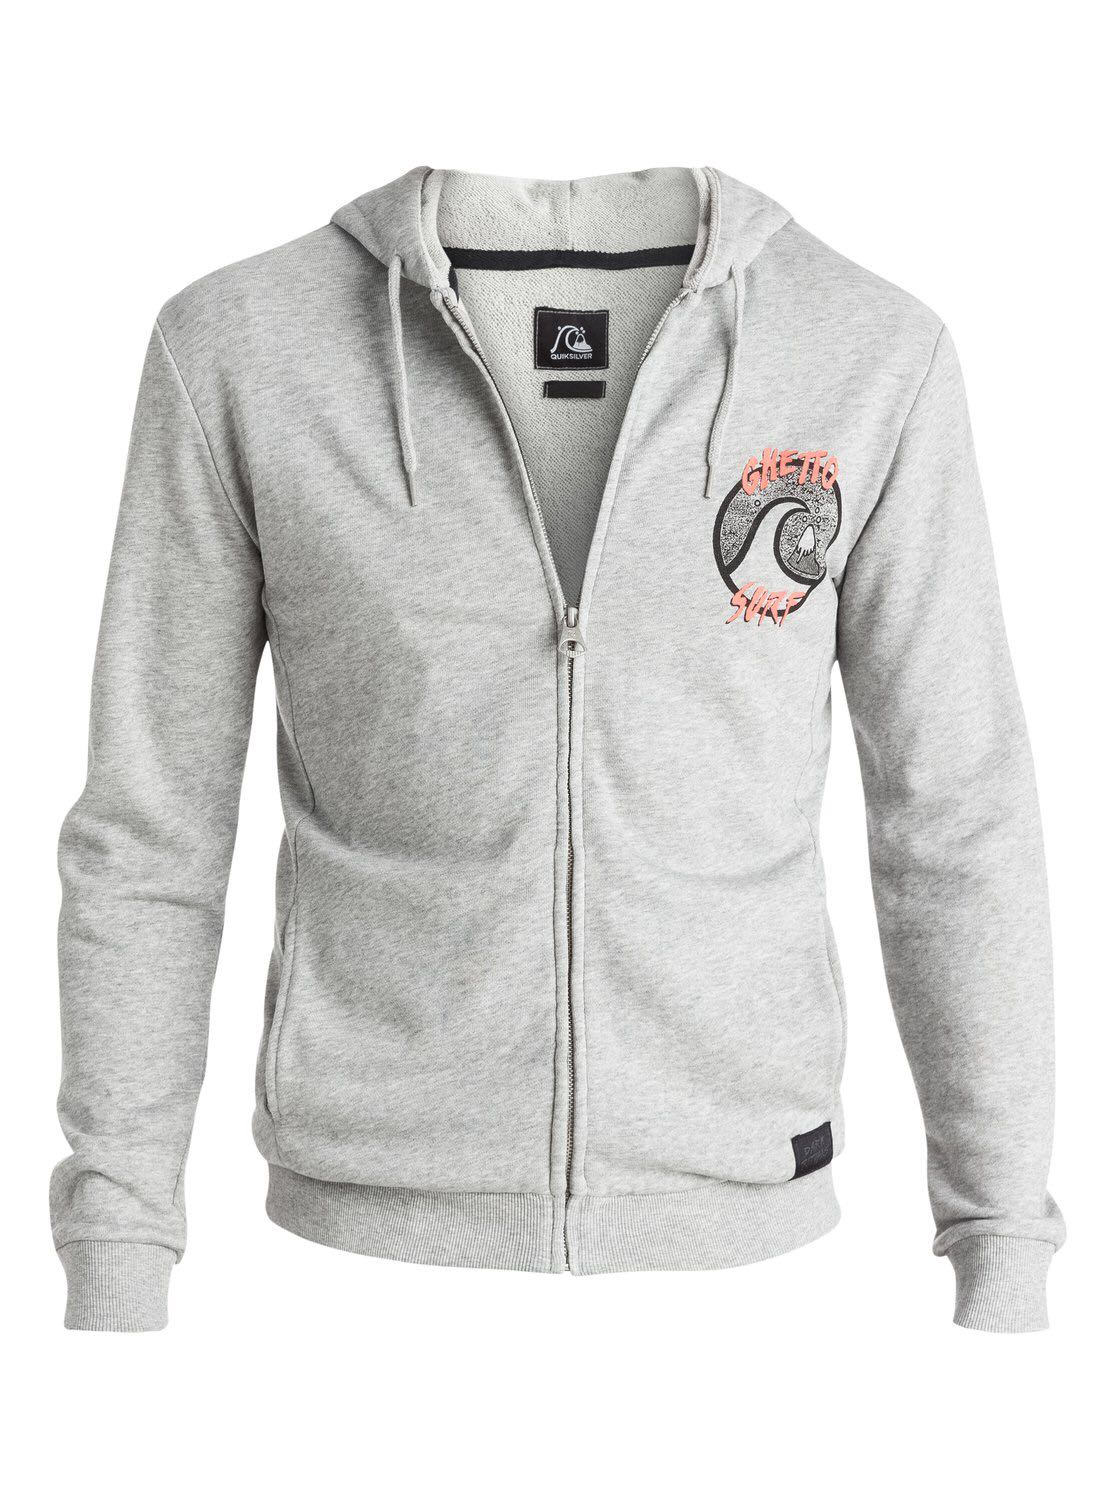 Quiksilver ghetto surf grey hoodie M size